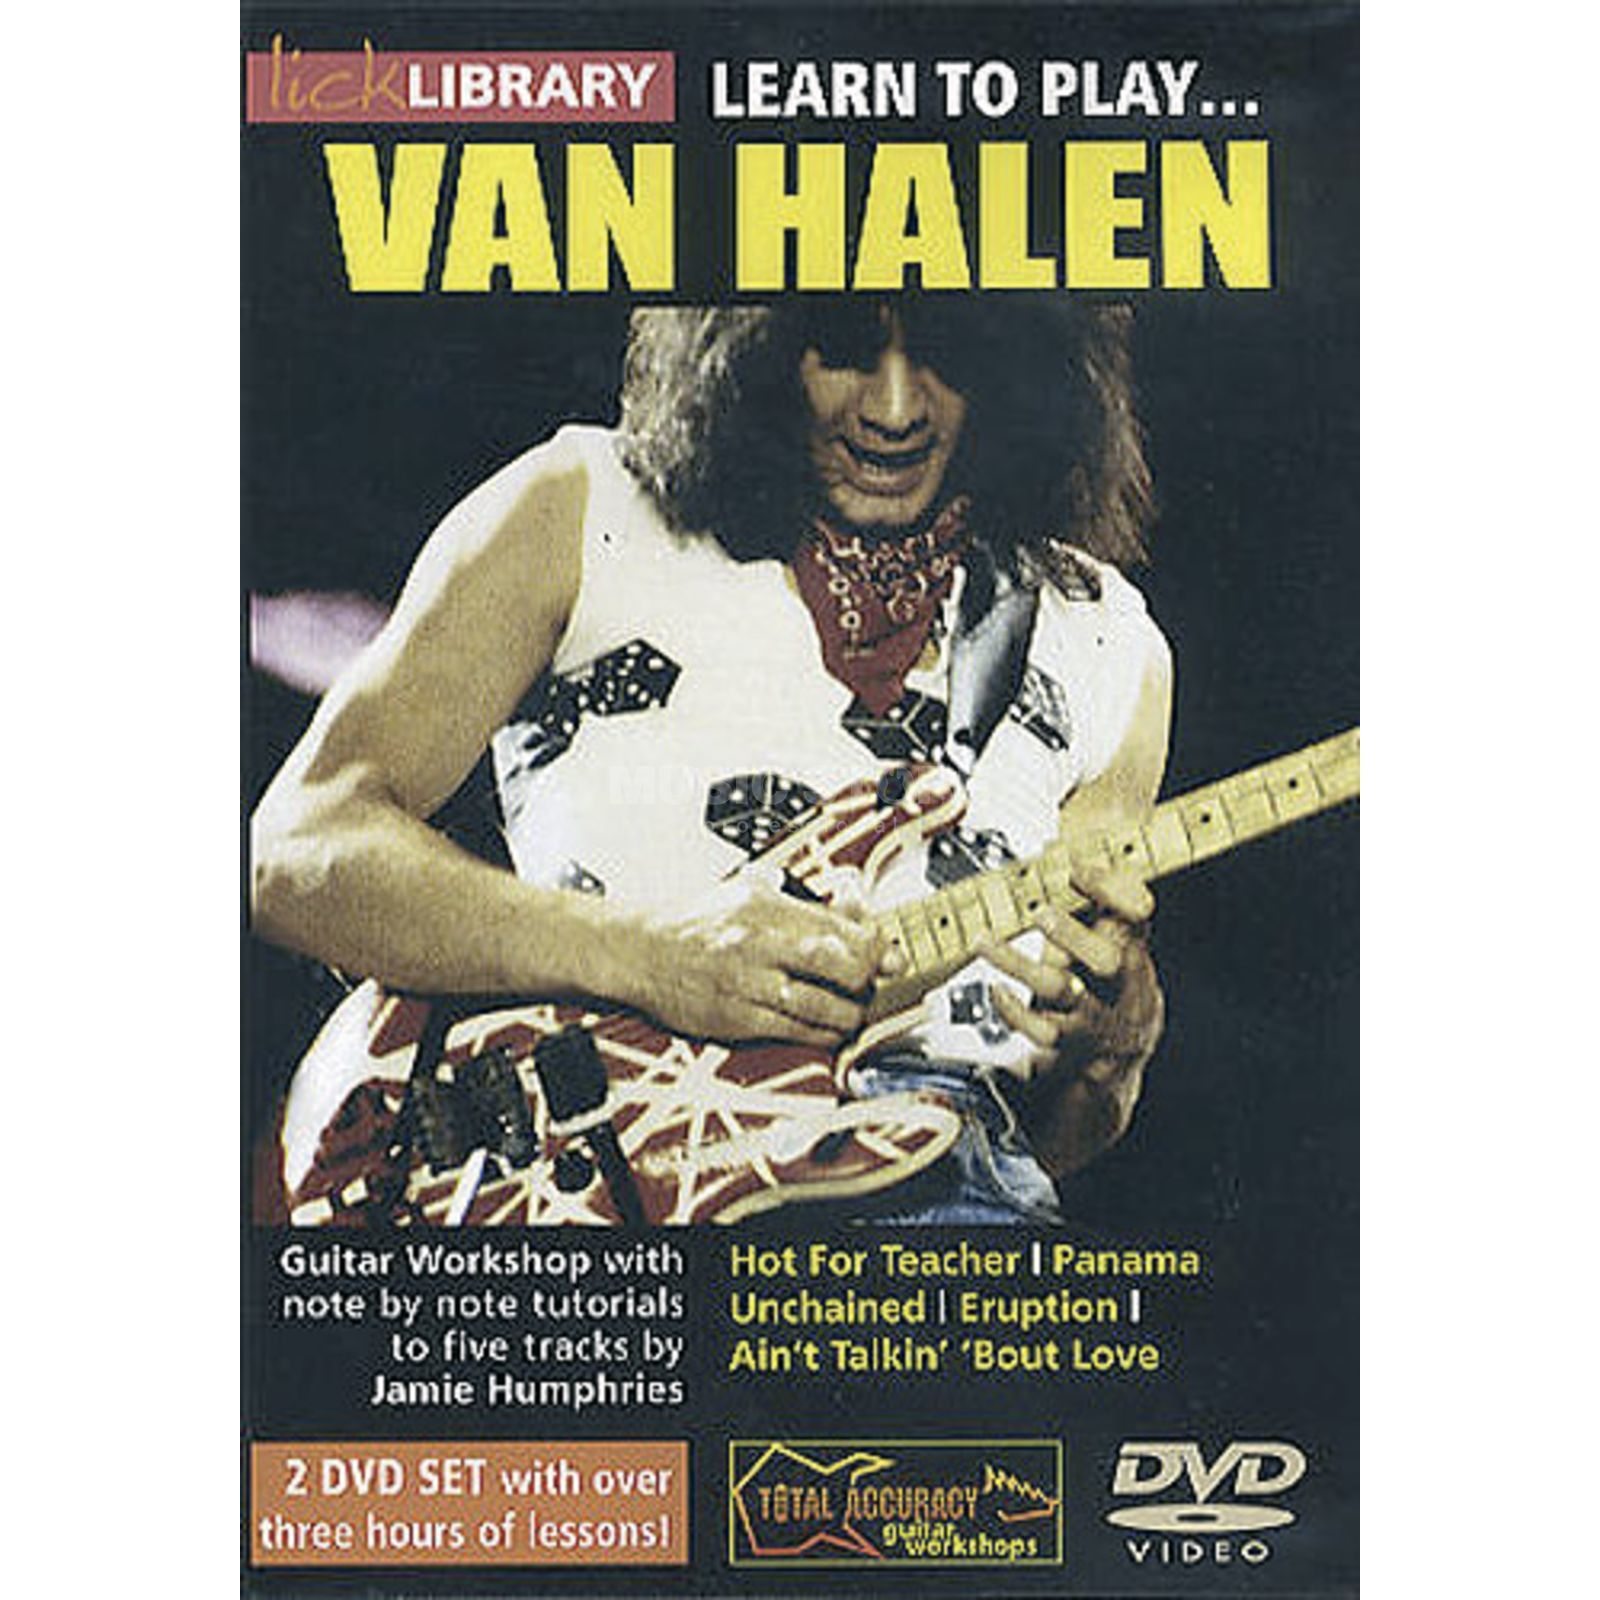 Roadrock International Lick Library: Learn To Play Van Halen DVD Produktbild